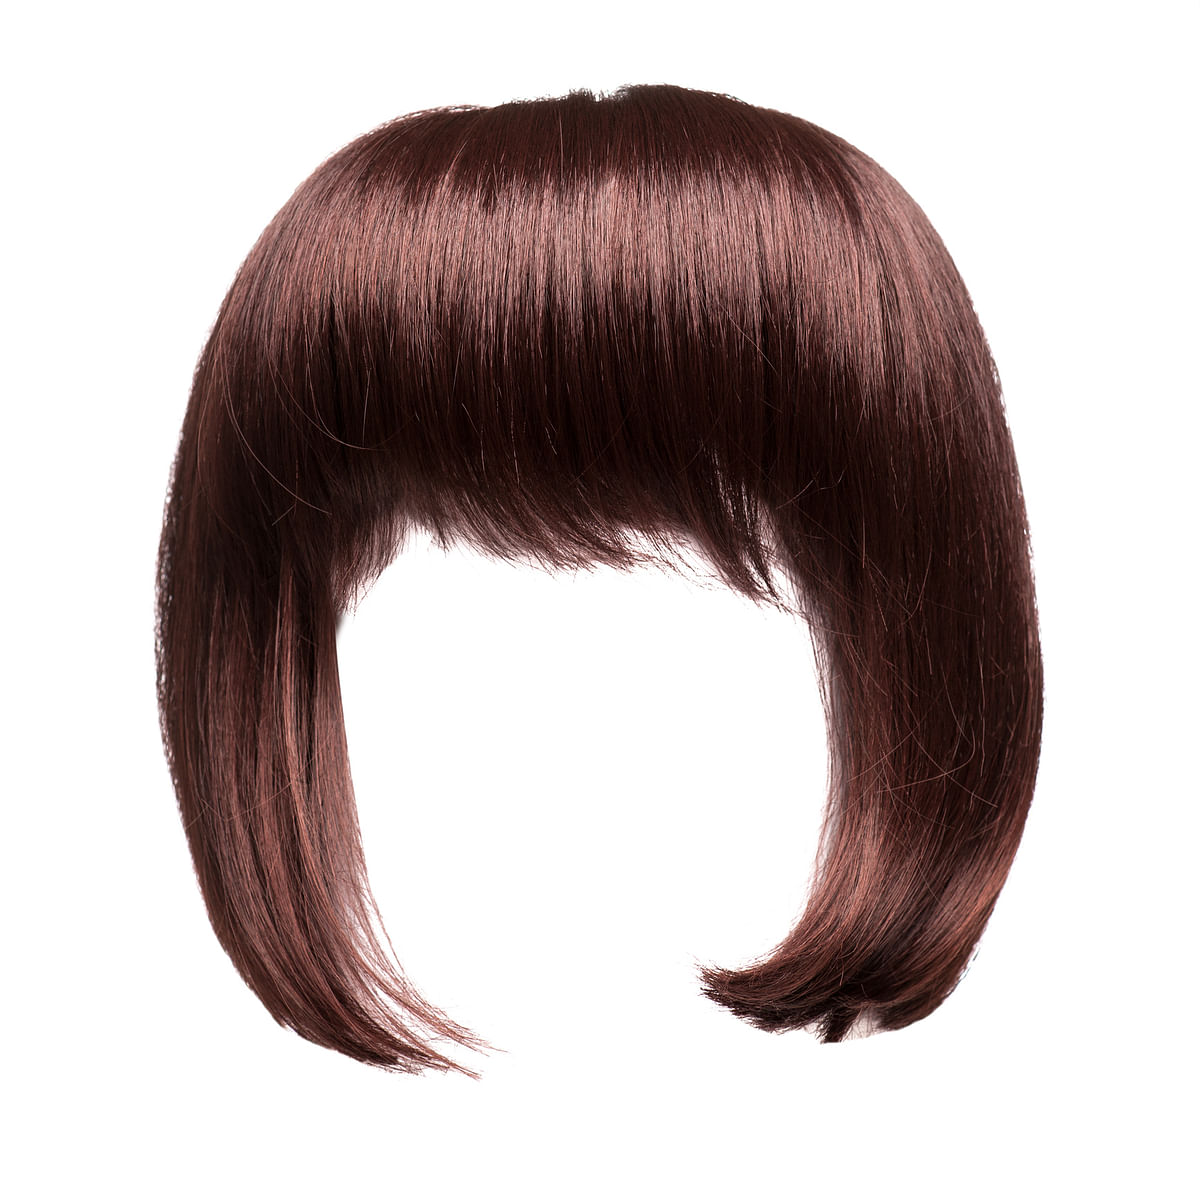 'I chose a wig with the hair I had always wanted – jet-black and poker straight.'